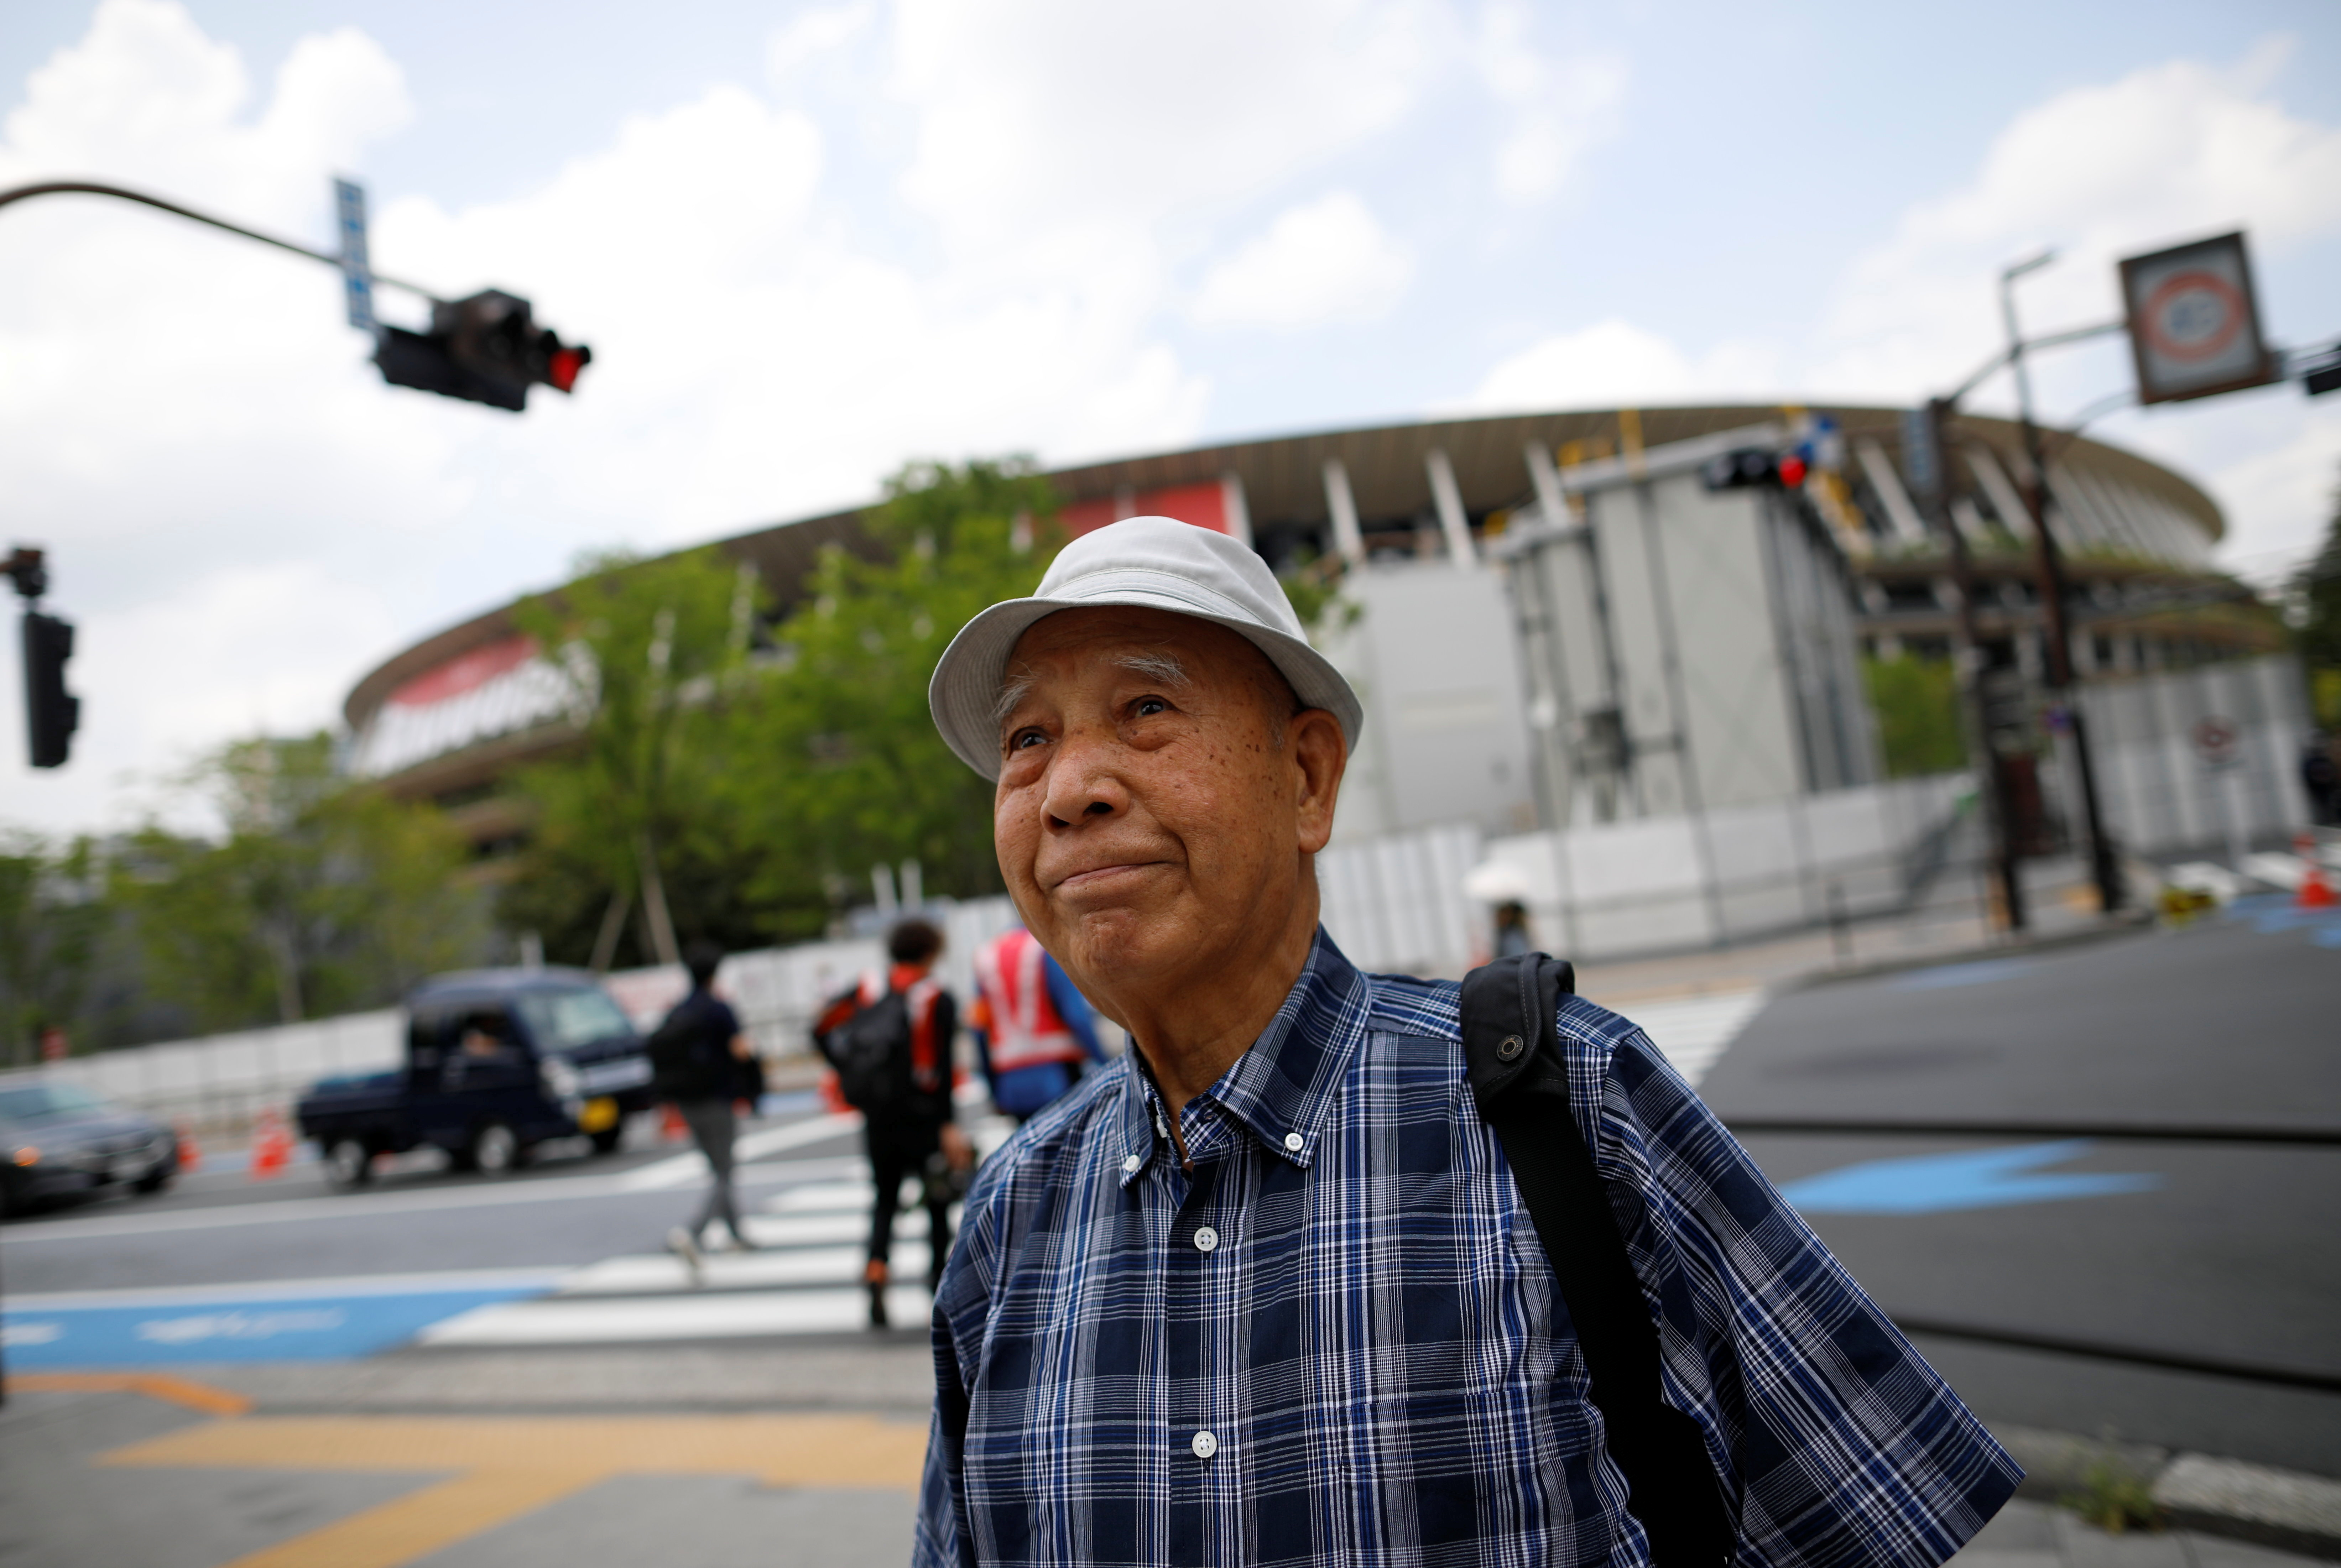 Kohei Jinno, 87, who was forced to leave his house two times ahead of the 1964 and 2020 Olympics Games to make way for construction of the main stadium, walks near the National Stadium, the main stadium for the 2020 Tokyo Olympic Games that have been postponed to 2021 due to the coronavirus disease (COVID-19) pandemic, in Tokyo, Japan June 24, 2021.  REUTERS/Issei Kato